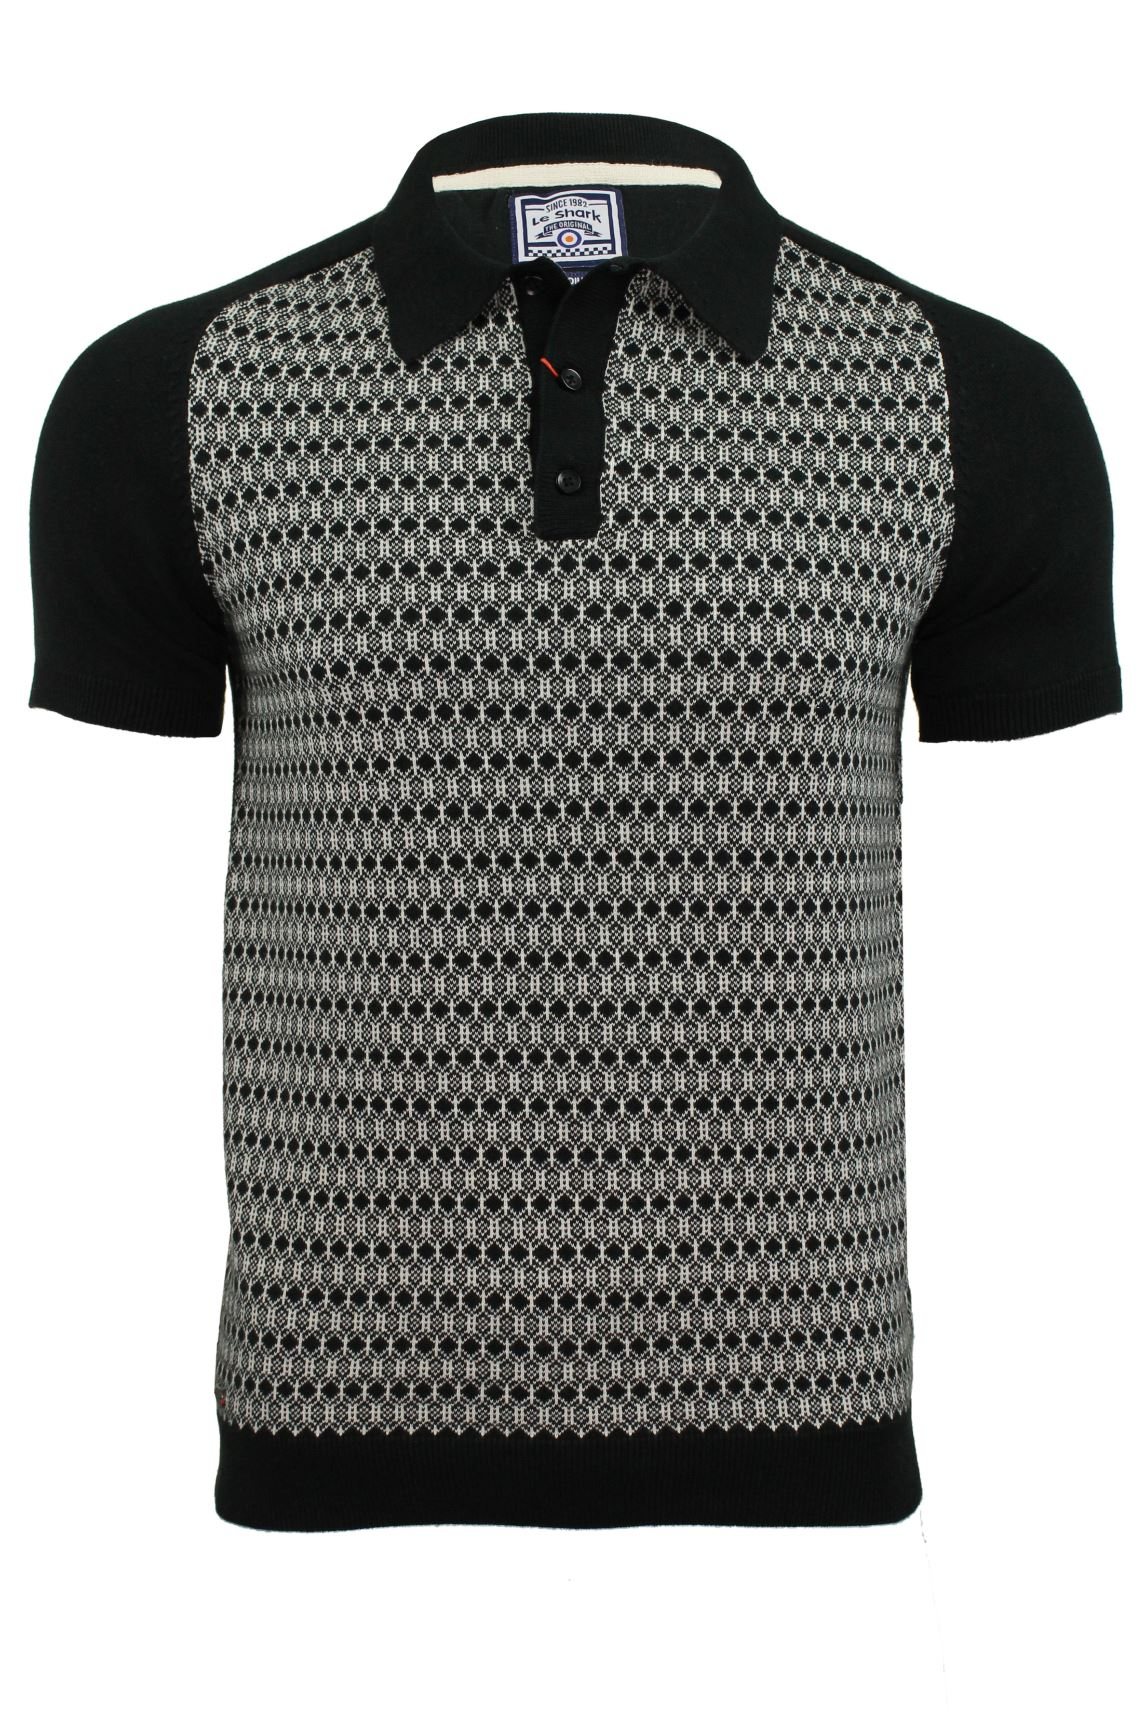 Mens knitted polo shirt by le shark short sleeved ebay for Knitted polo shirt mens